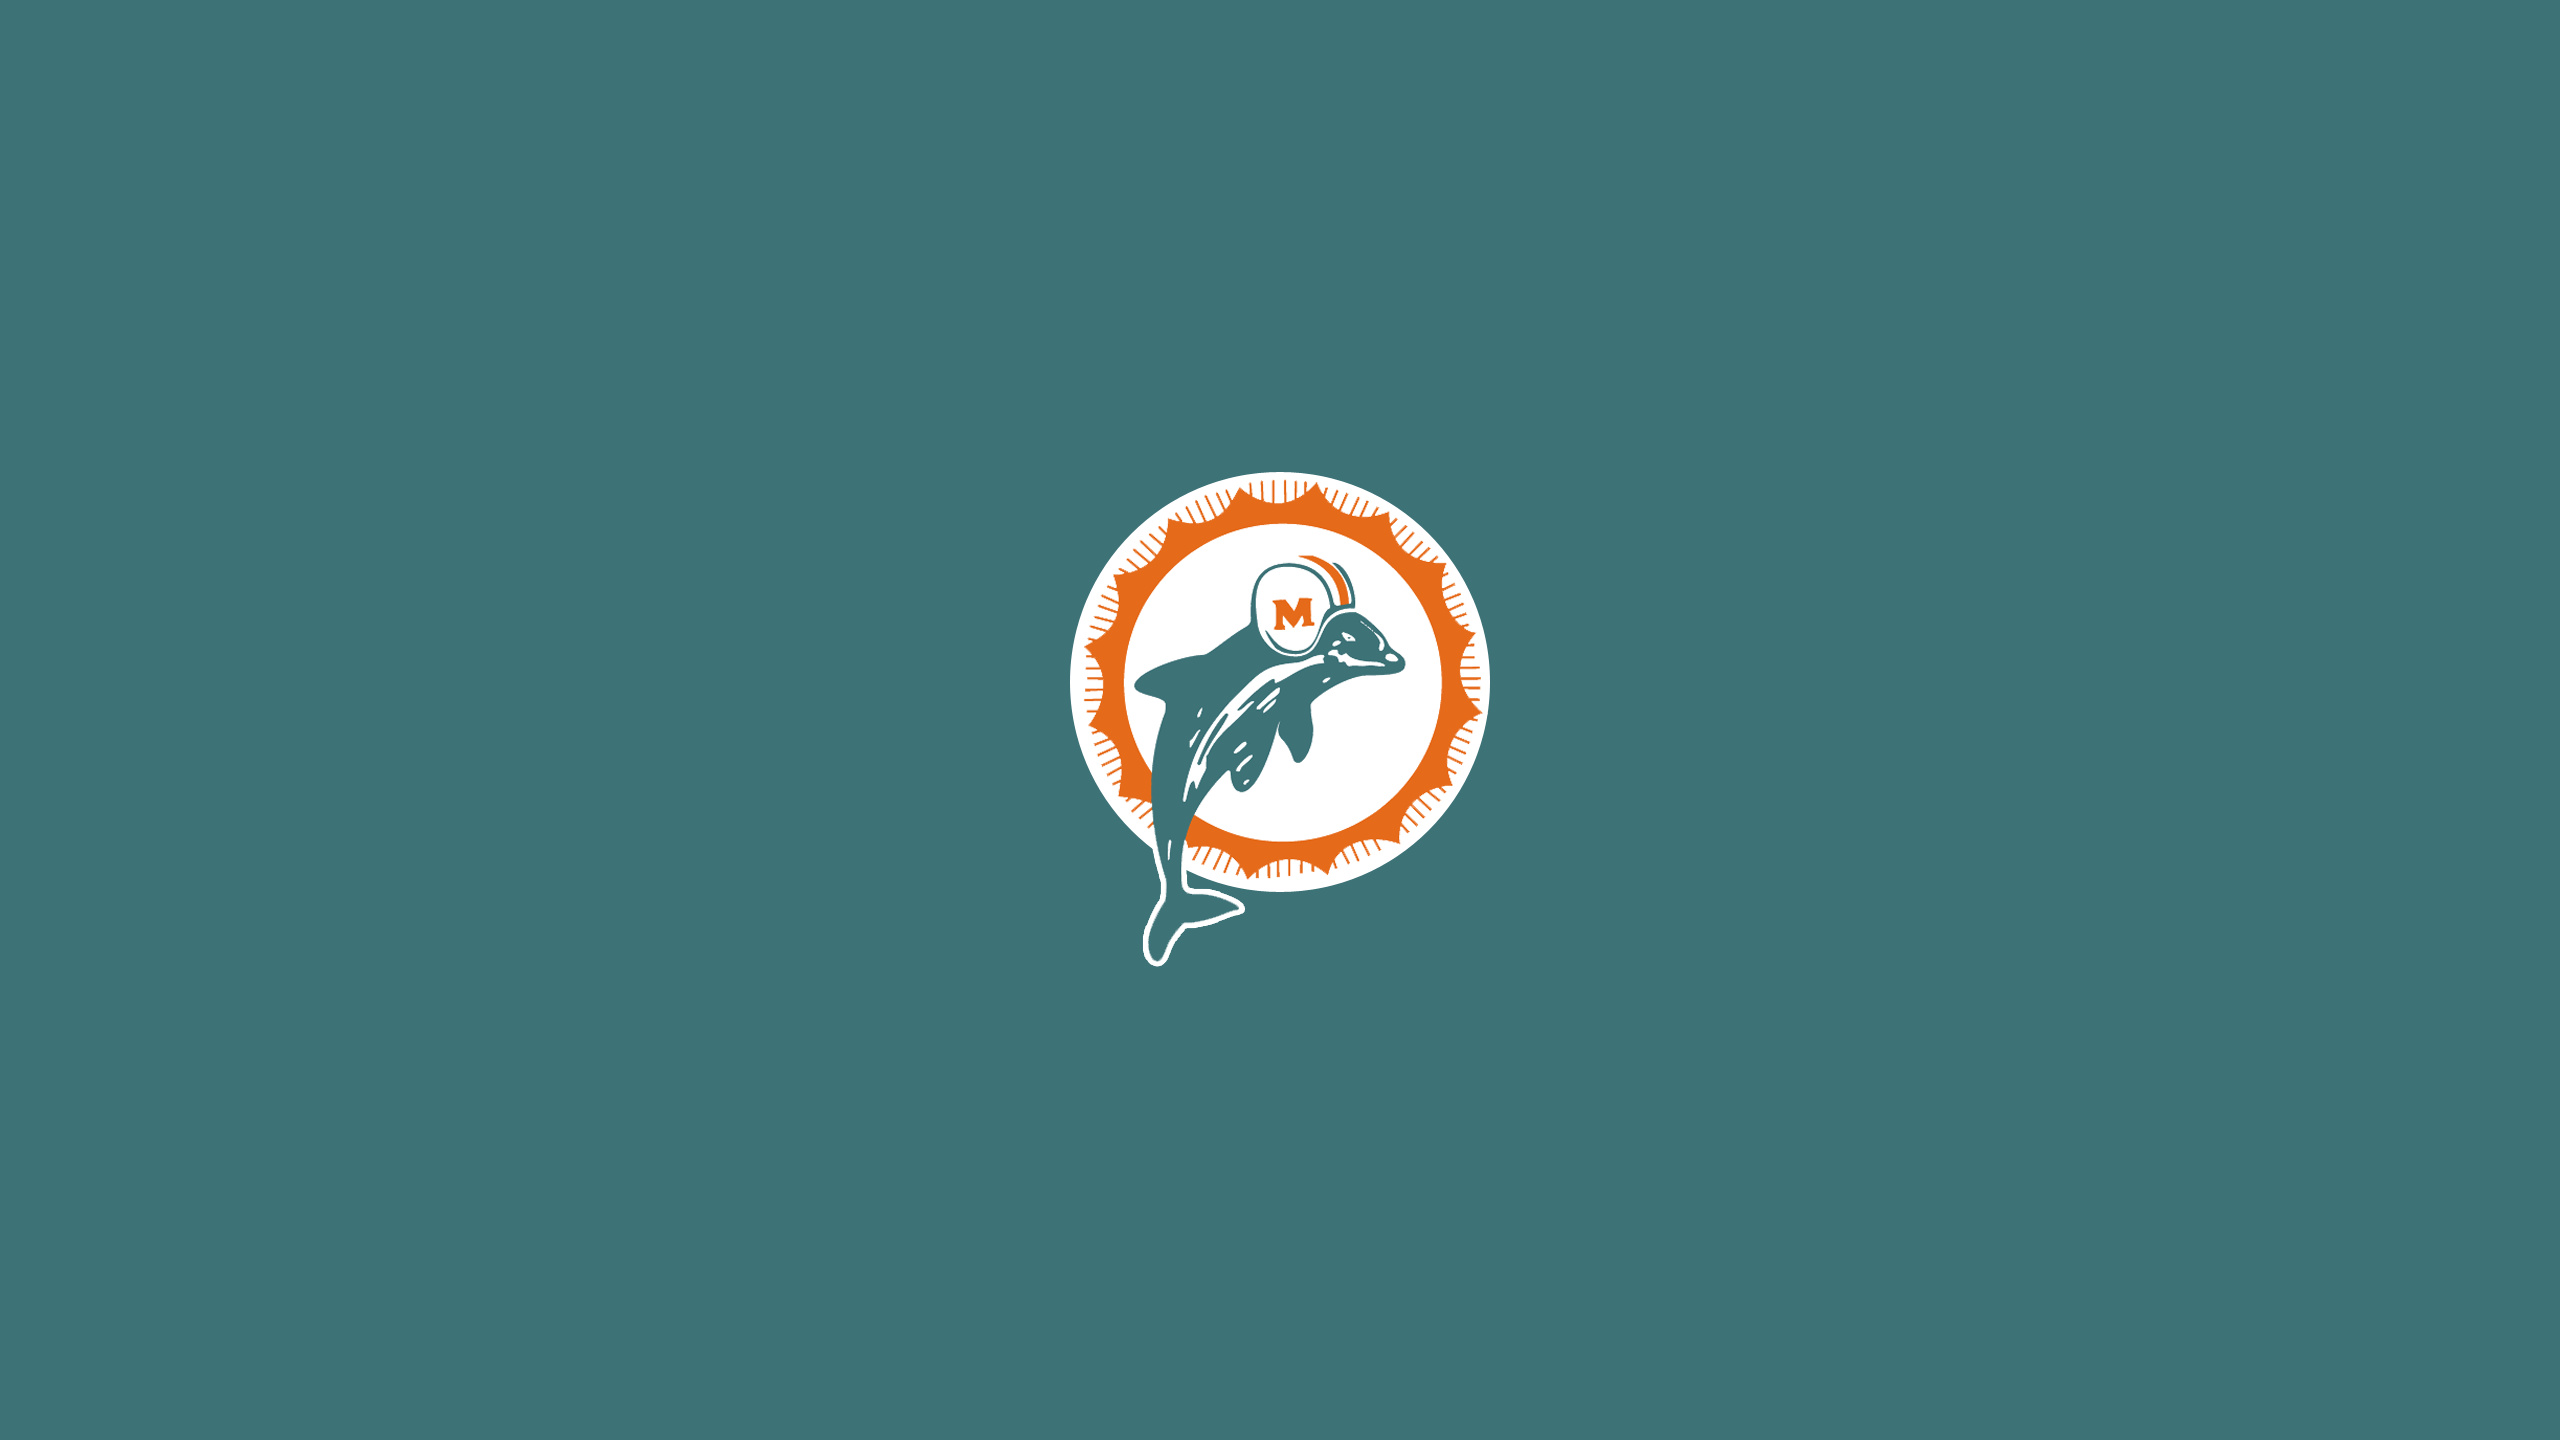 Miami Dolphins (Old School)